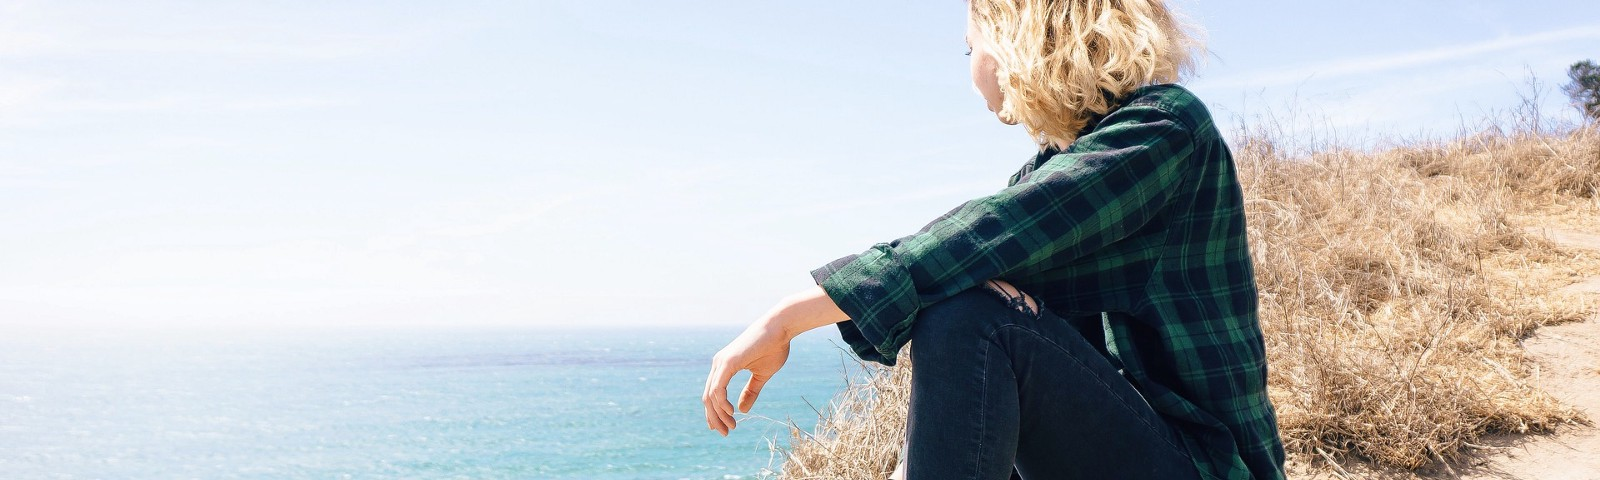 blond woman sitting on a cliff overlooking the ocean imagining her dreams coming true